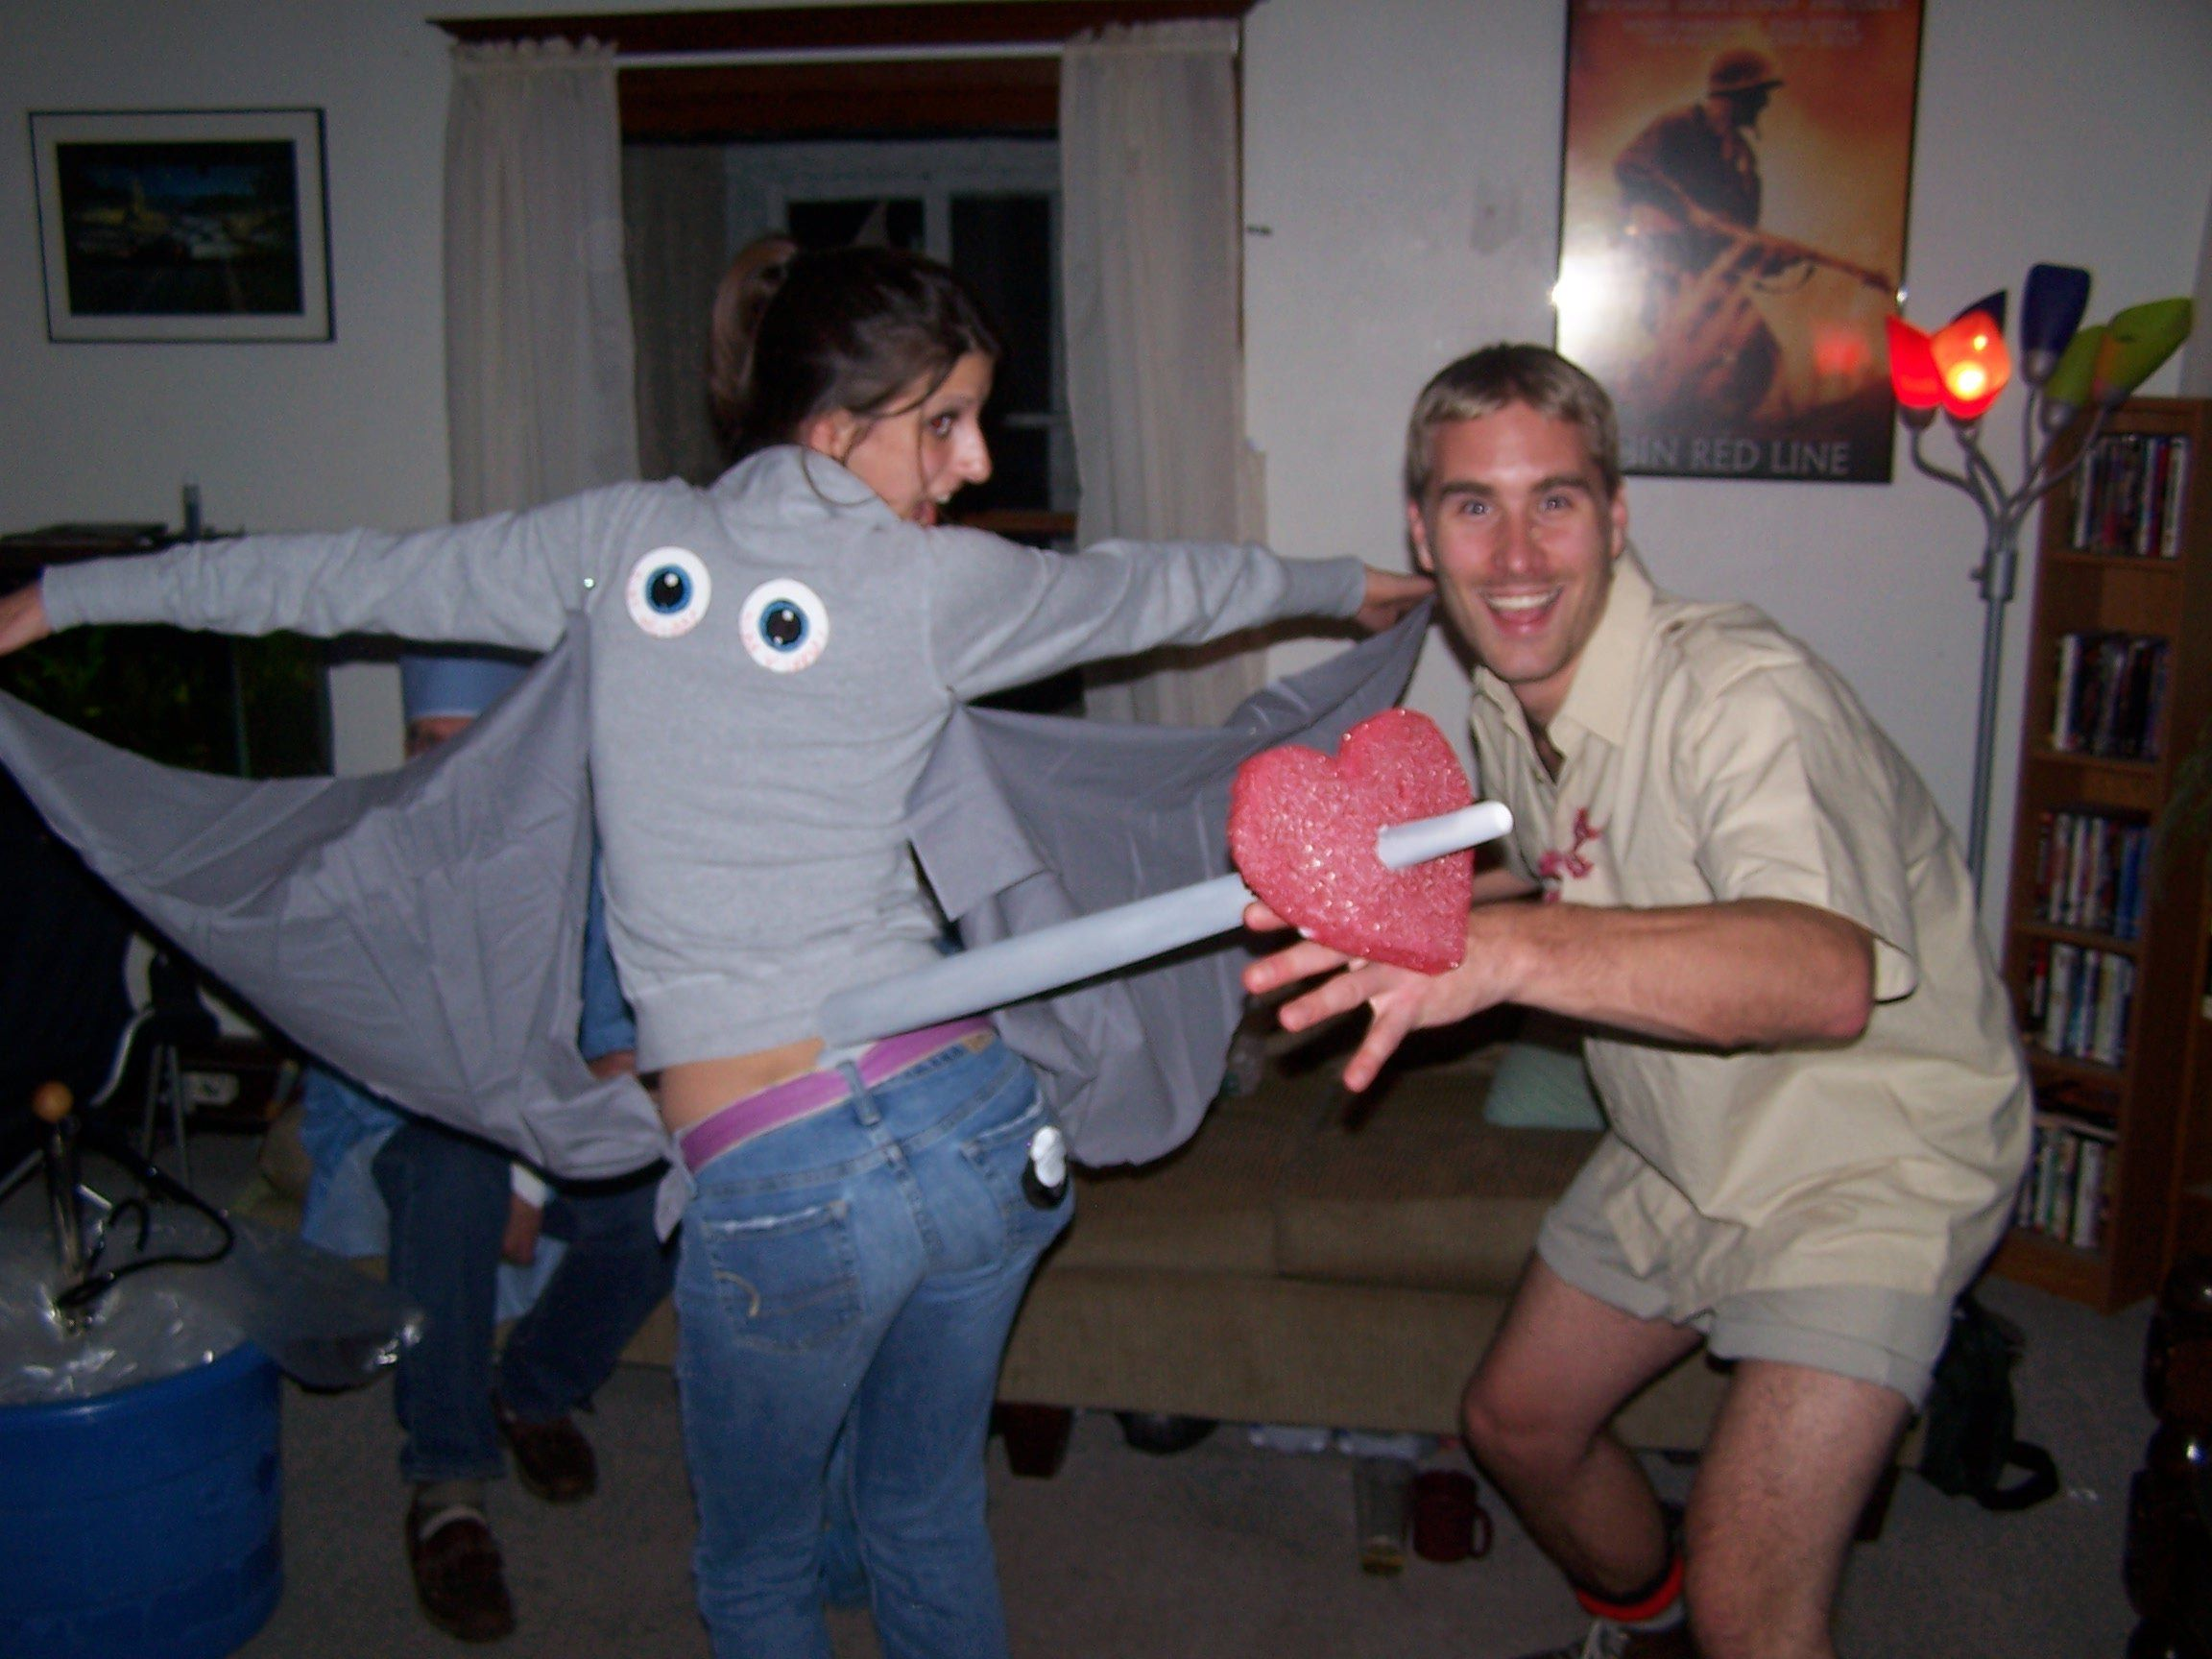 Steve Irwin and Sting Ray? Bad taste, tacky, or funny? | Halloween ...